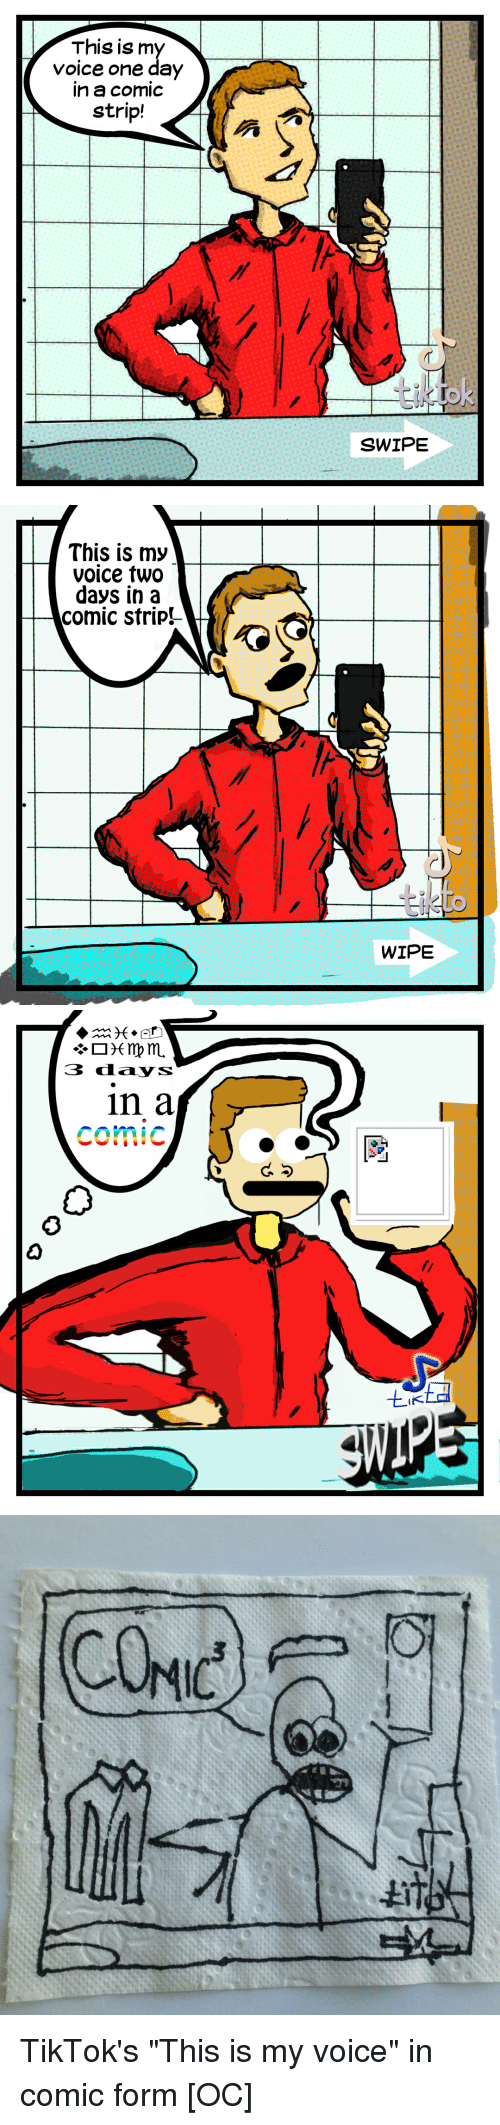 """Meme, Voice, and Comics: This is m  Voice one day  n a comic  strip!  SWIPE   This is my  voice two  days in a  comic strip!  WIPE   3 ddays  in a  comic  0  IK TikTok's """"This is my voice"""" in comic form [OC]"""